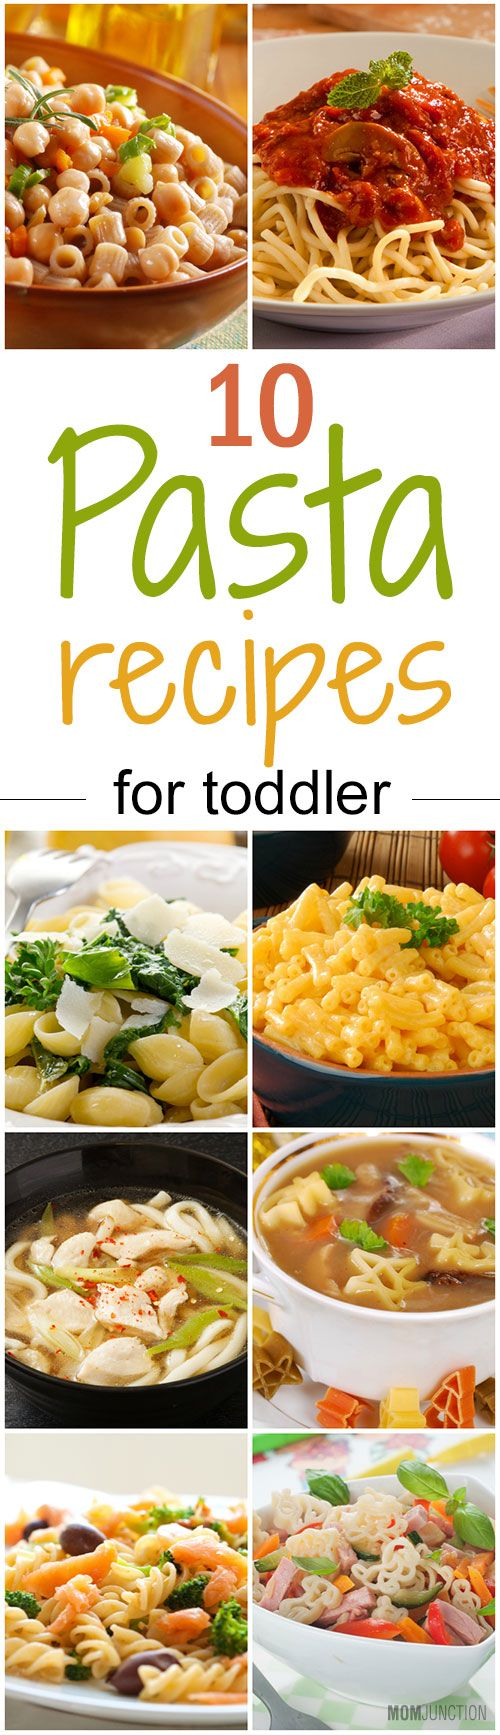 10 Yummy Pasta #Recipes Your Toddler Will Love: So, ready to do the tango with pasta for toddlers? Let's cook some delicious and healthy pasta recipes for toddlers!